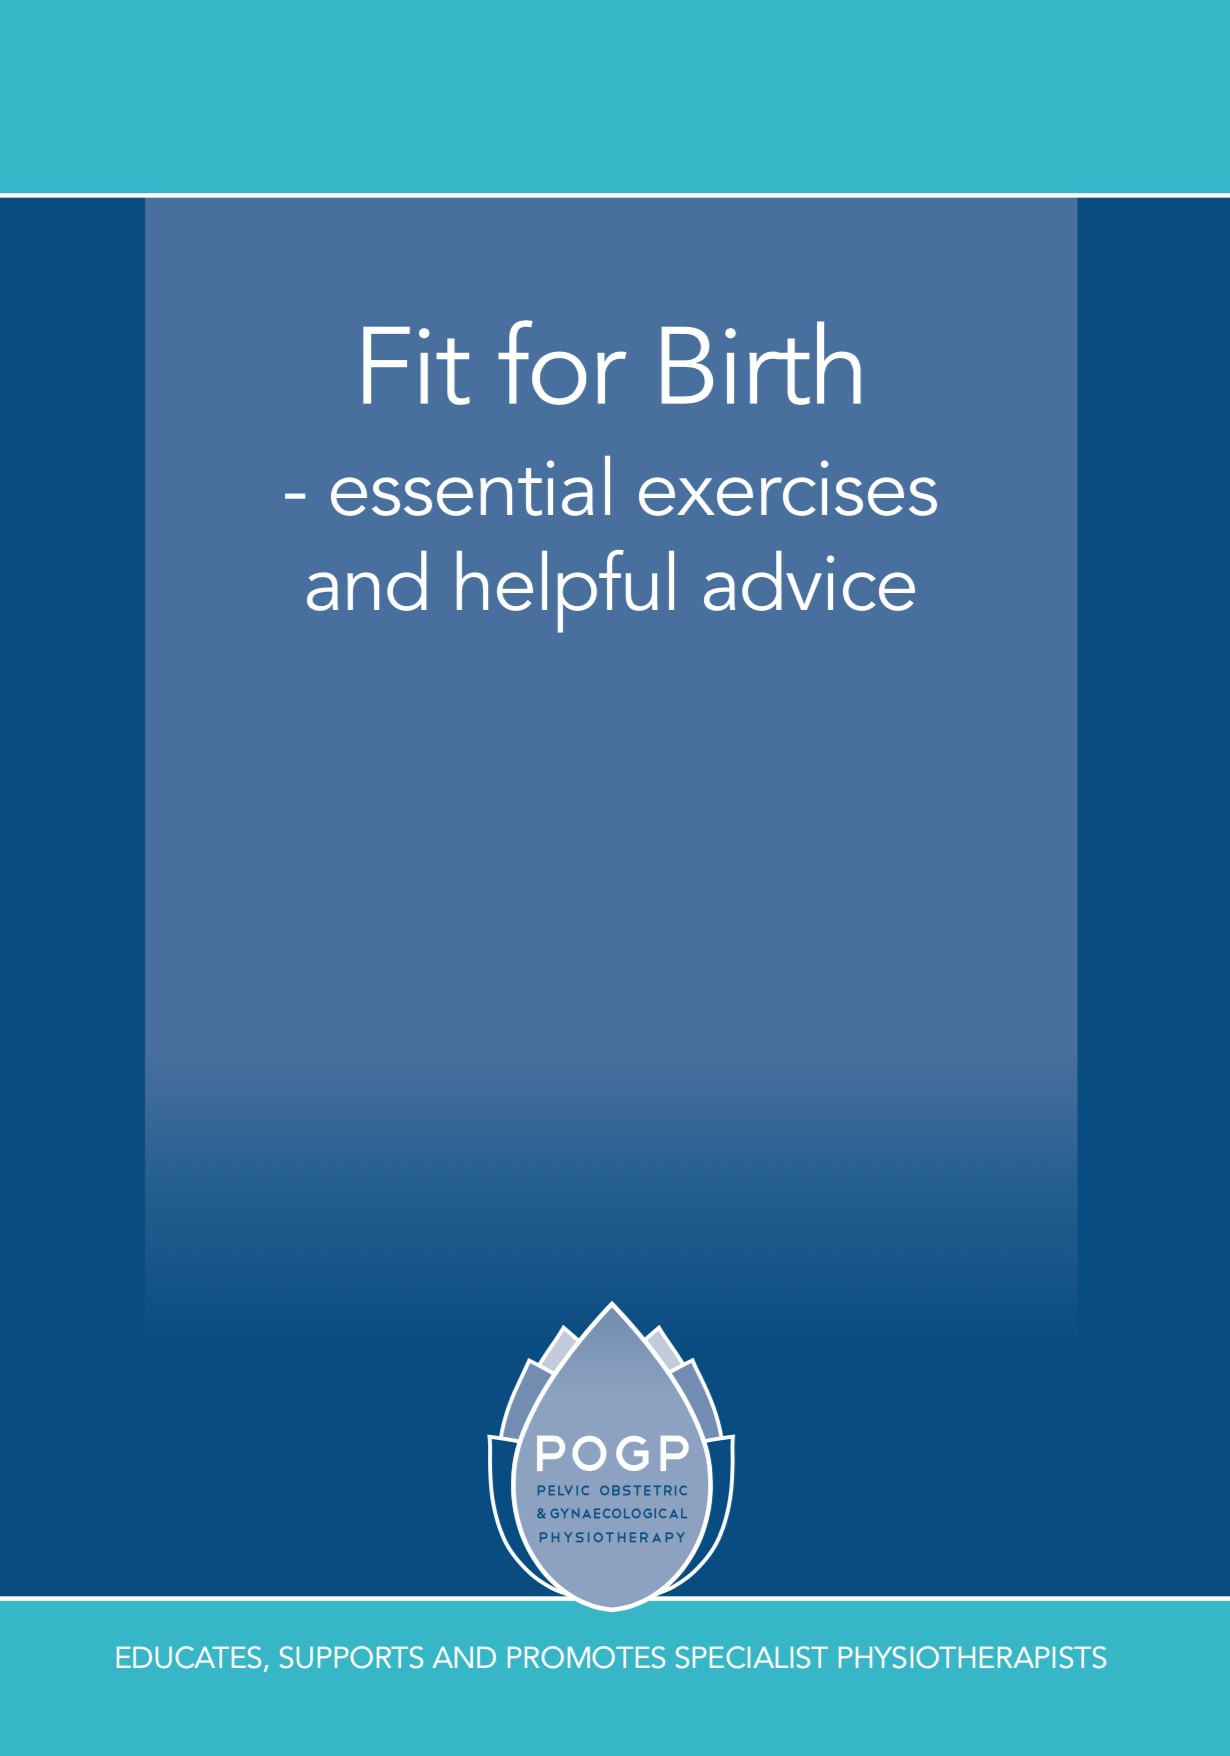 Fit for Birth